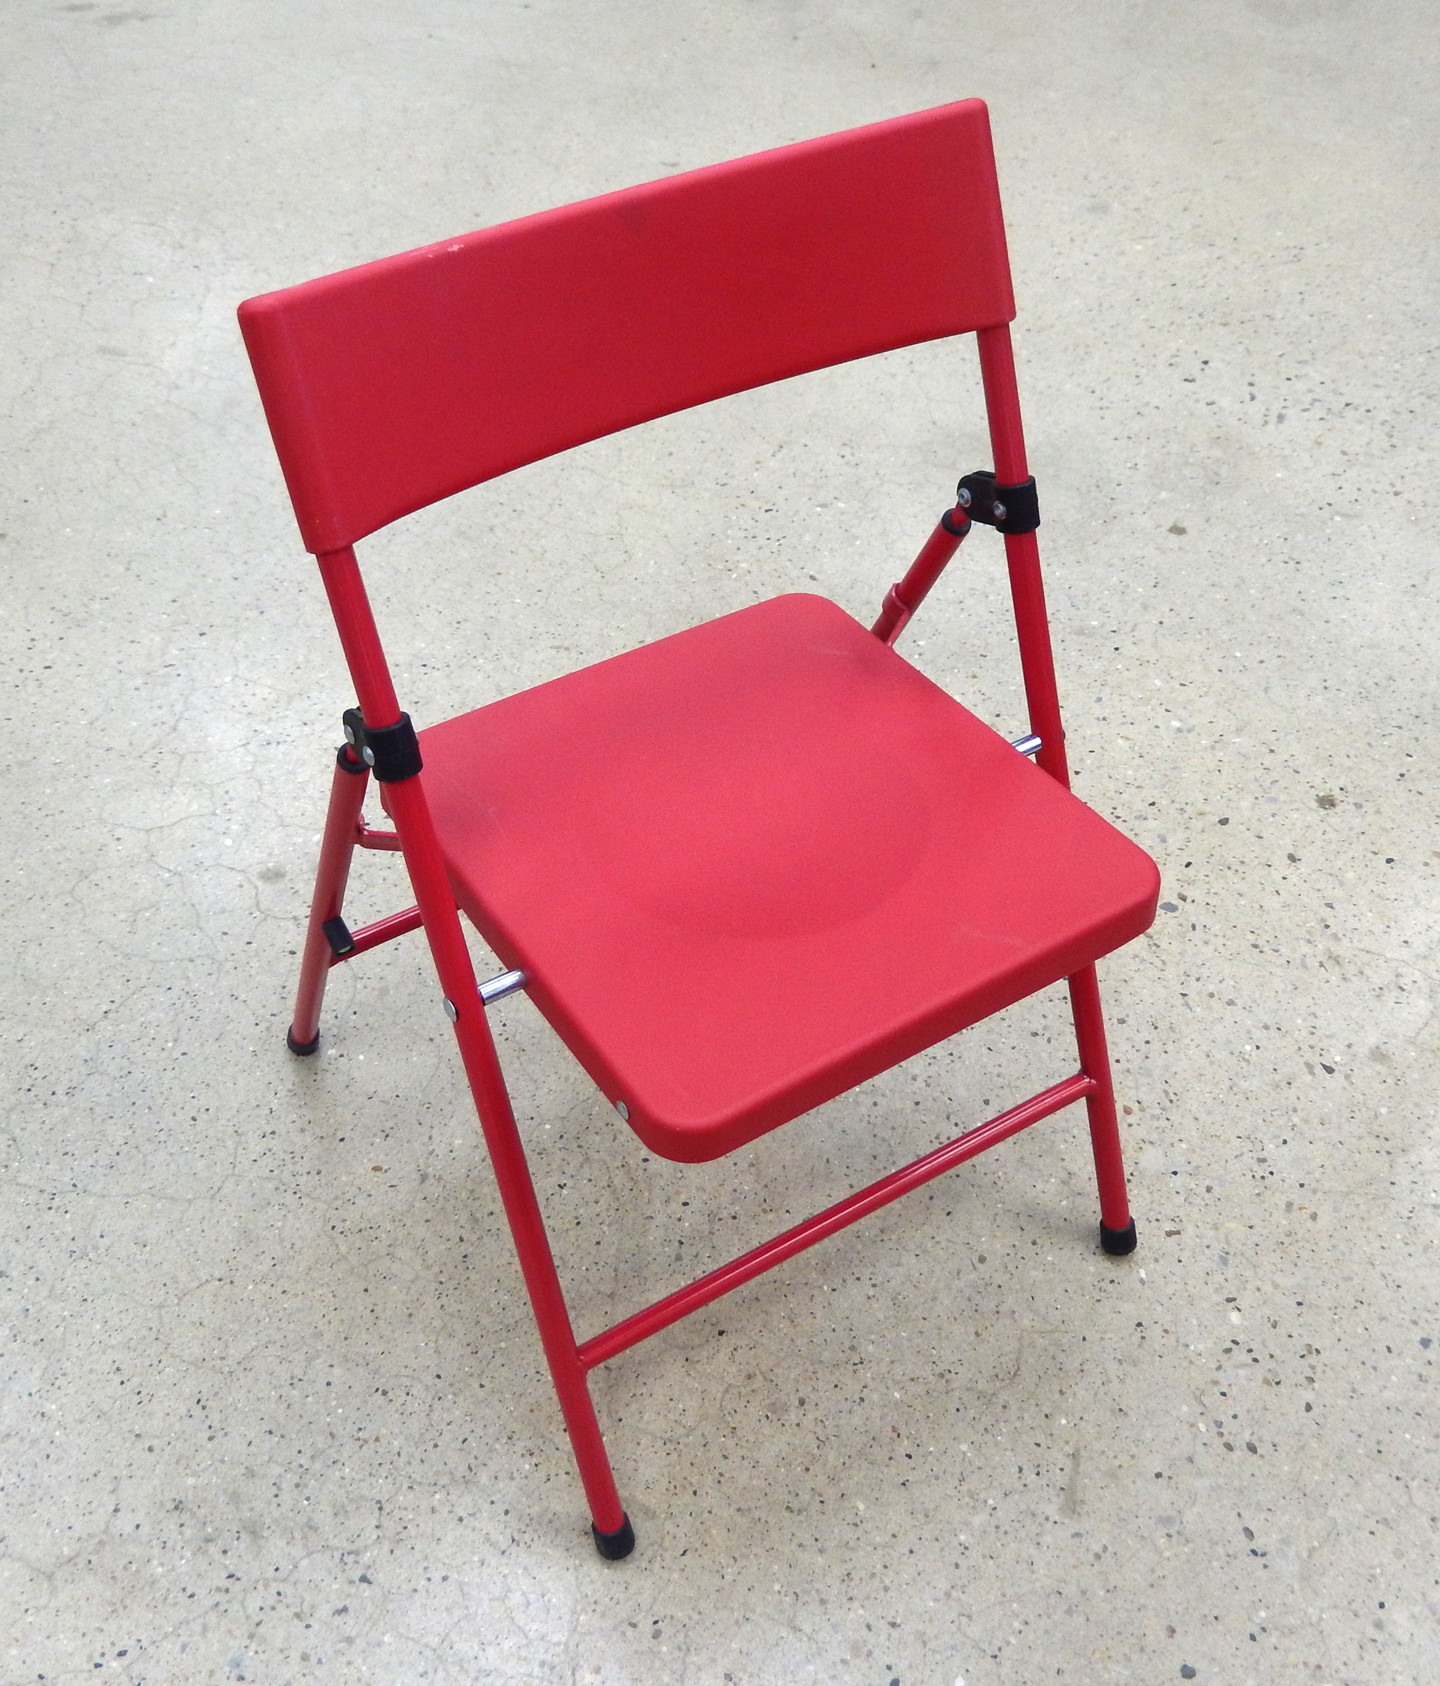 Folding Childrens Tables Red Folding Chair Kids Childrens